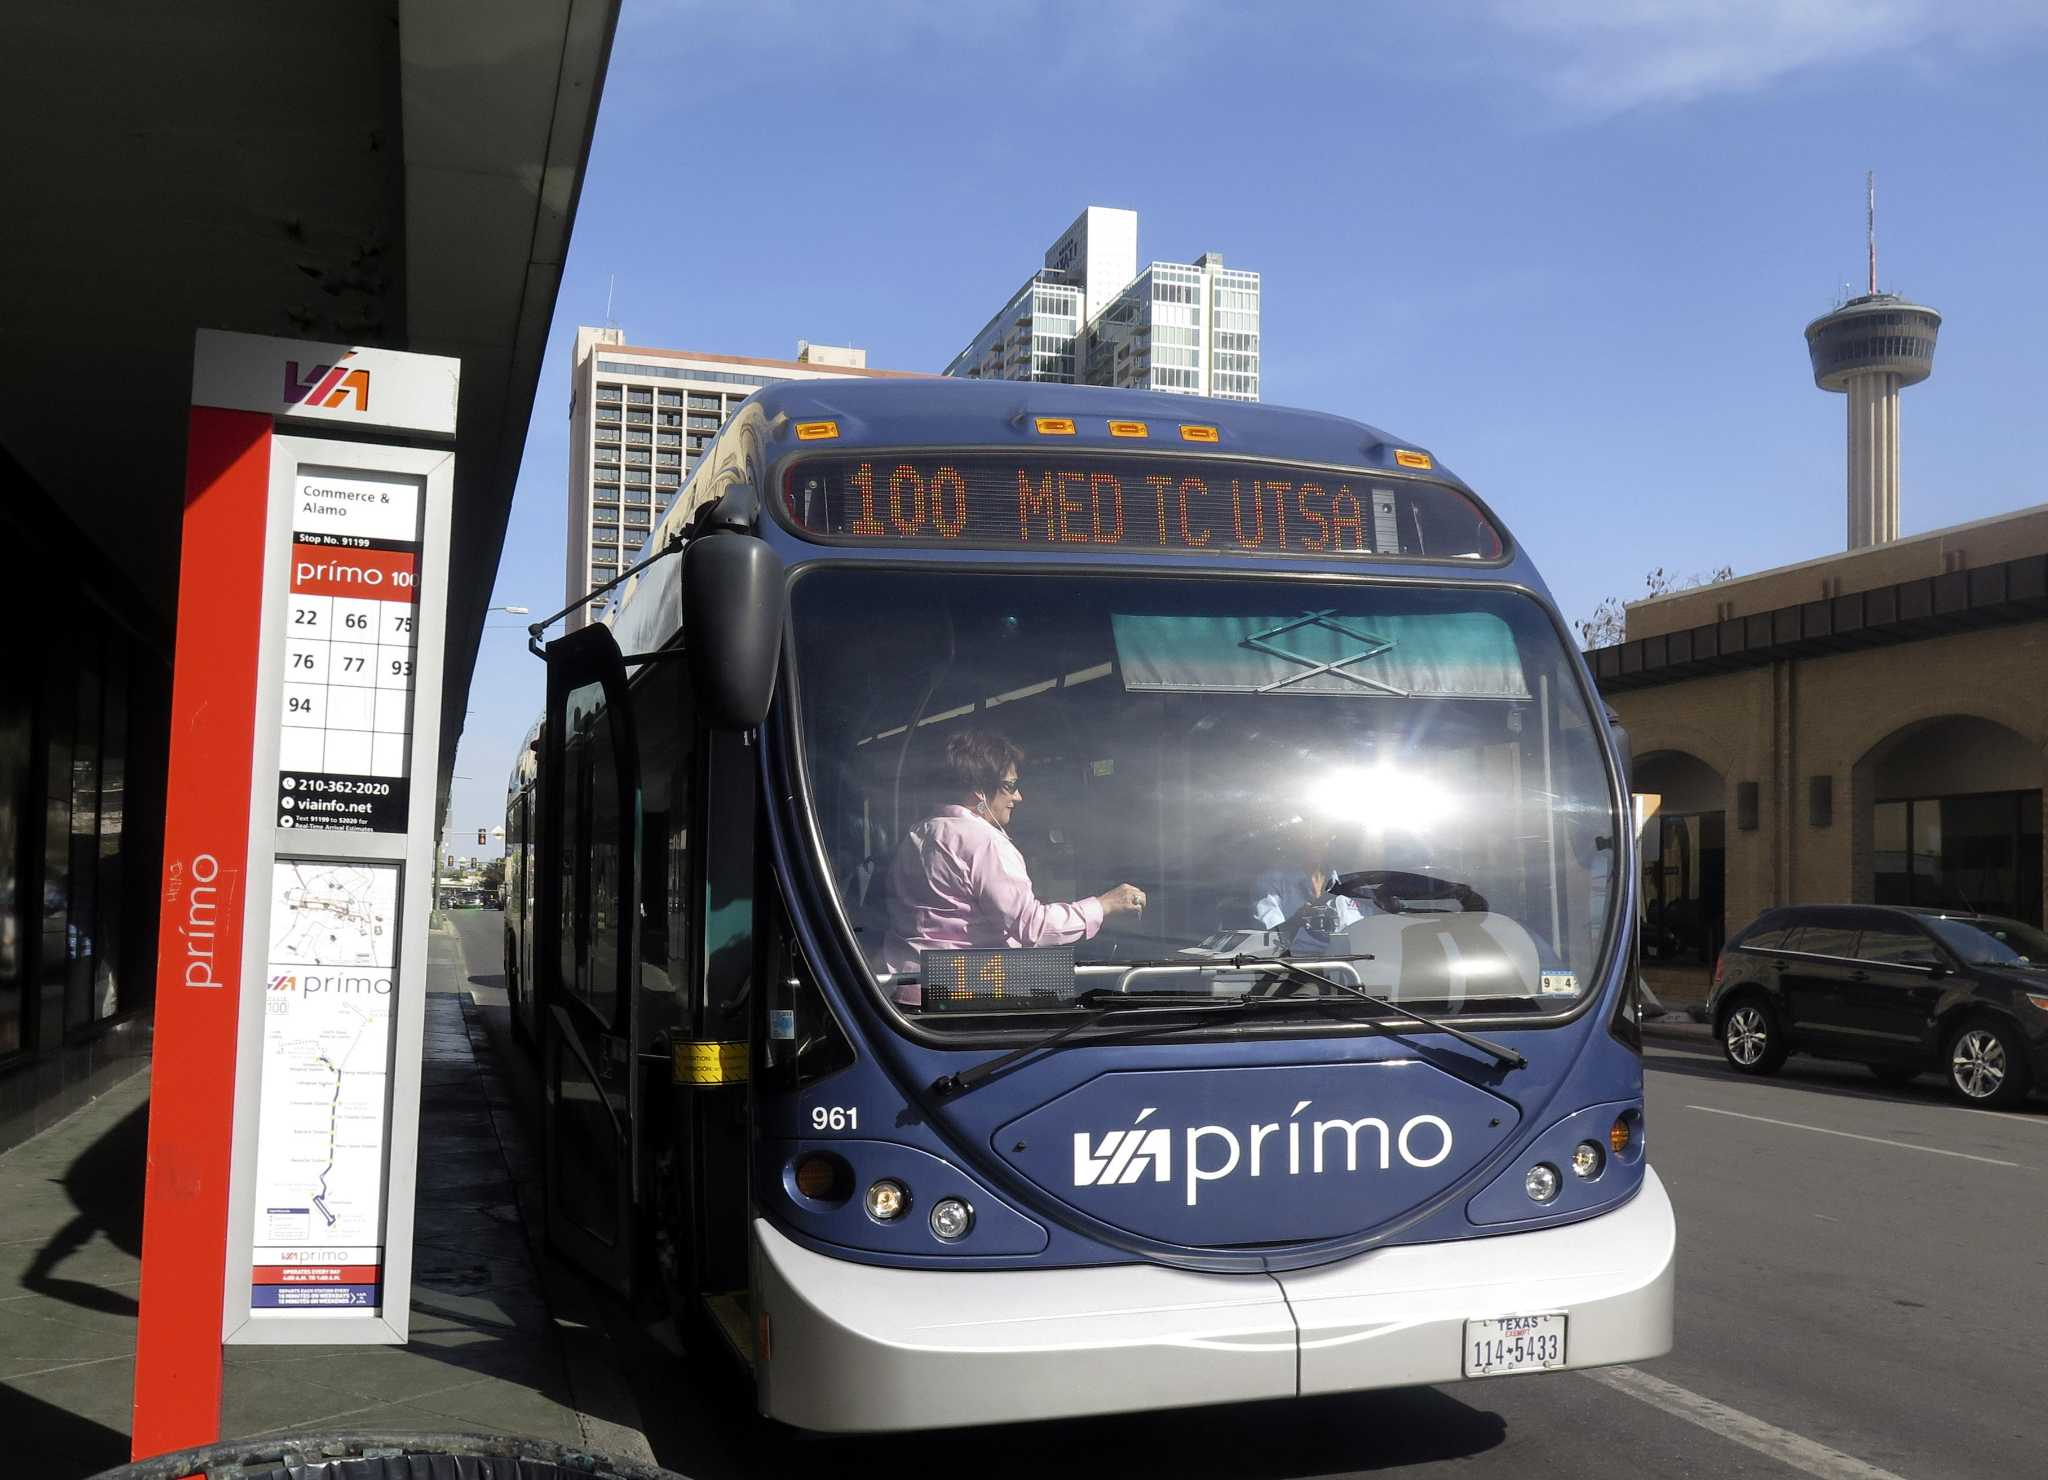 san antonio's bus service slated to get faster after $4.3 million in